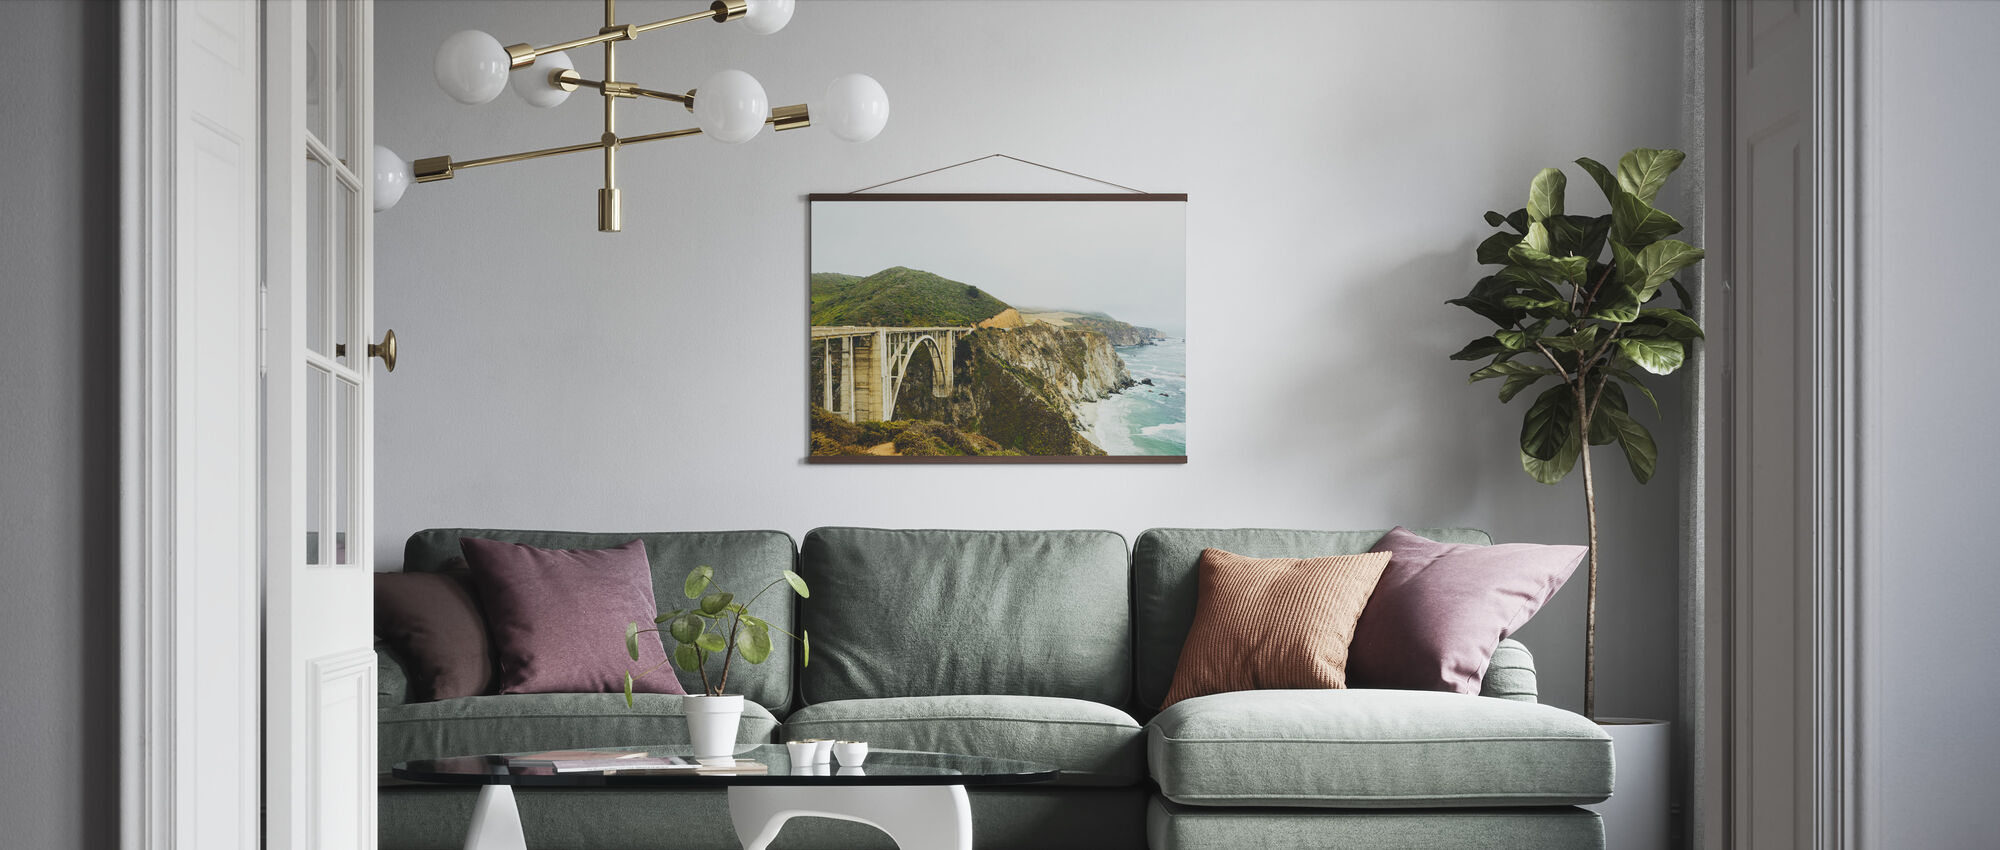 Bixby Creek Bridge, Big Sur Kalifornien - Poster - Wohnzimmer